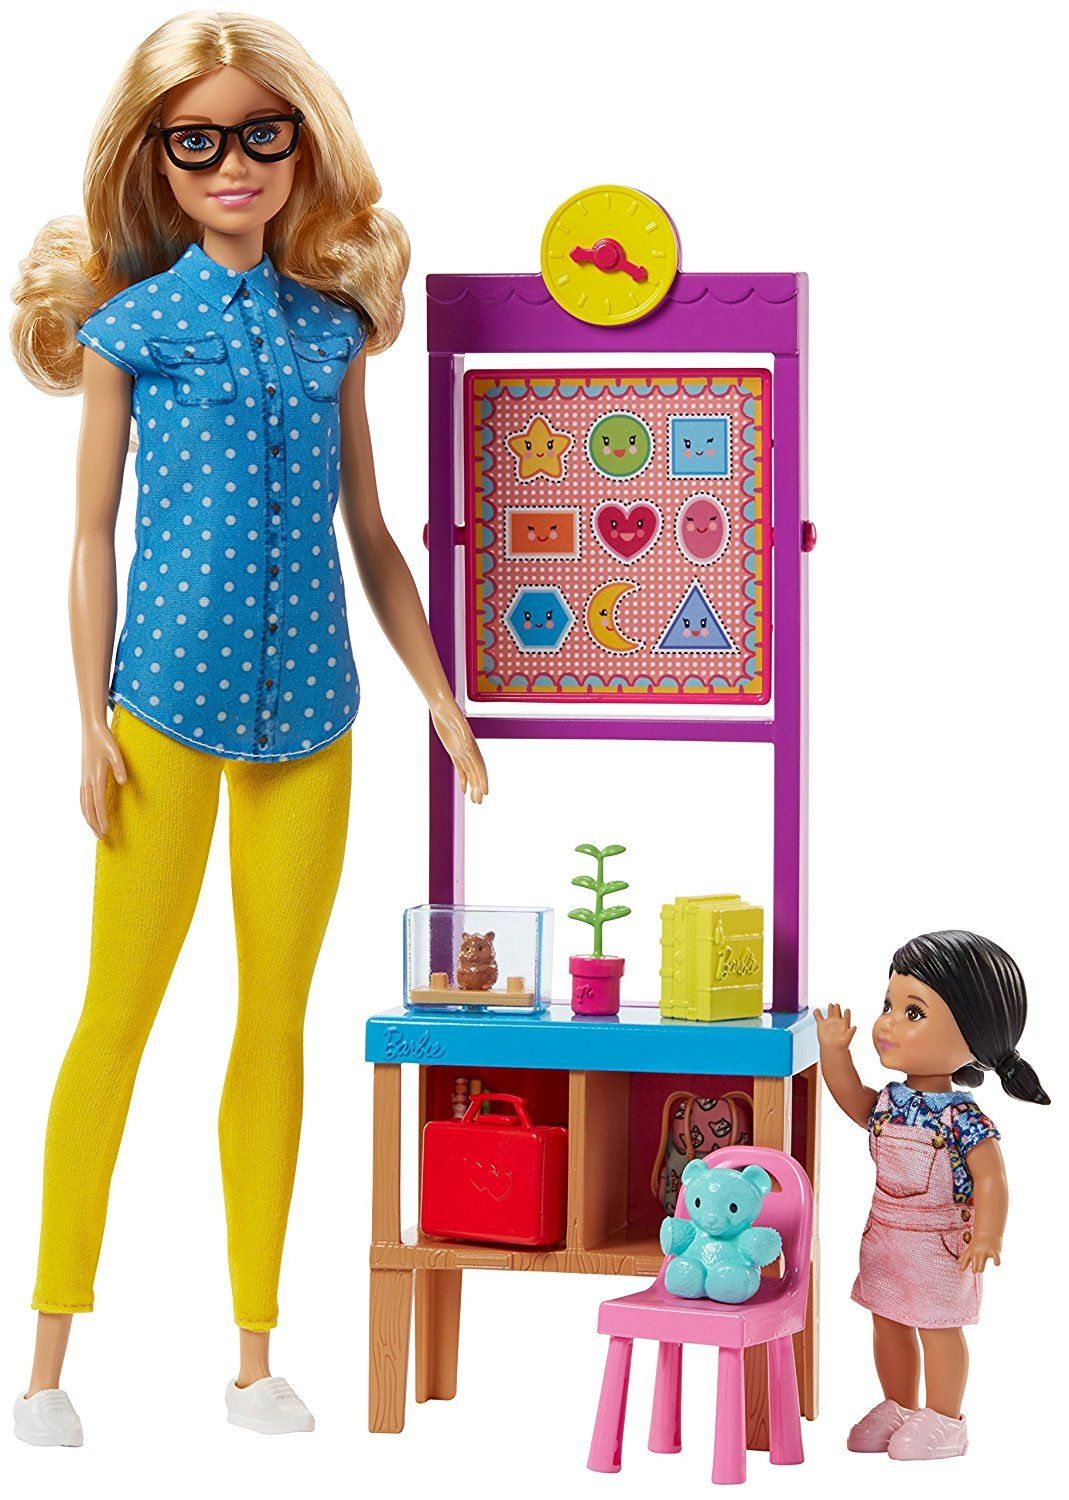 2018 News About The Barbie Dolls All Things Barbie